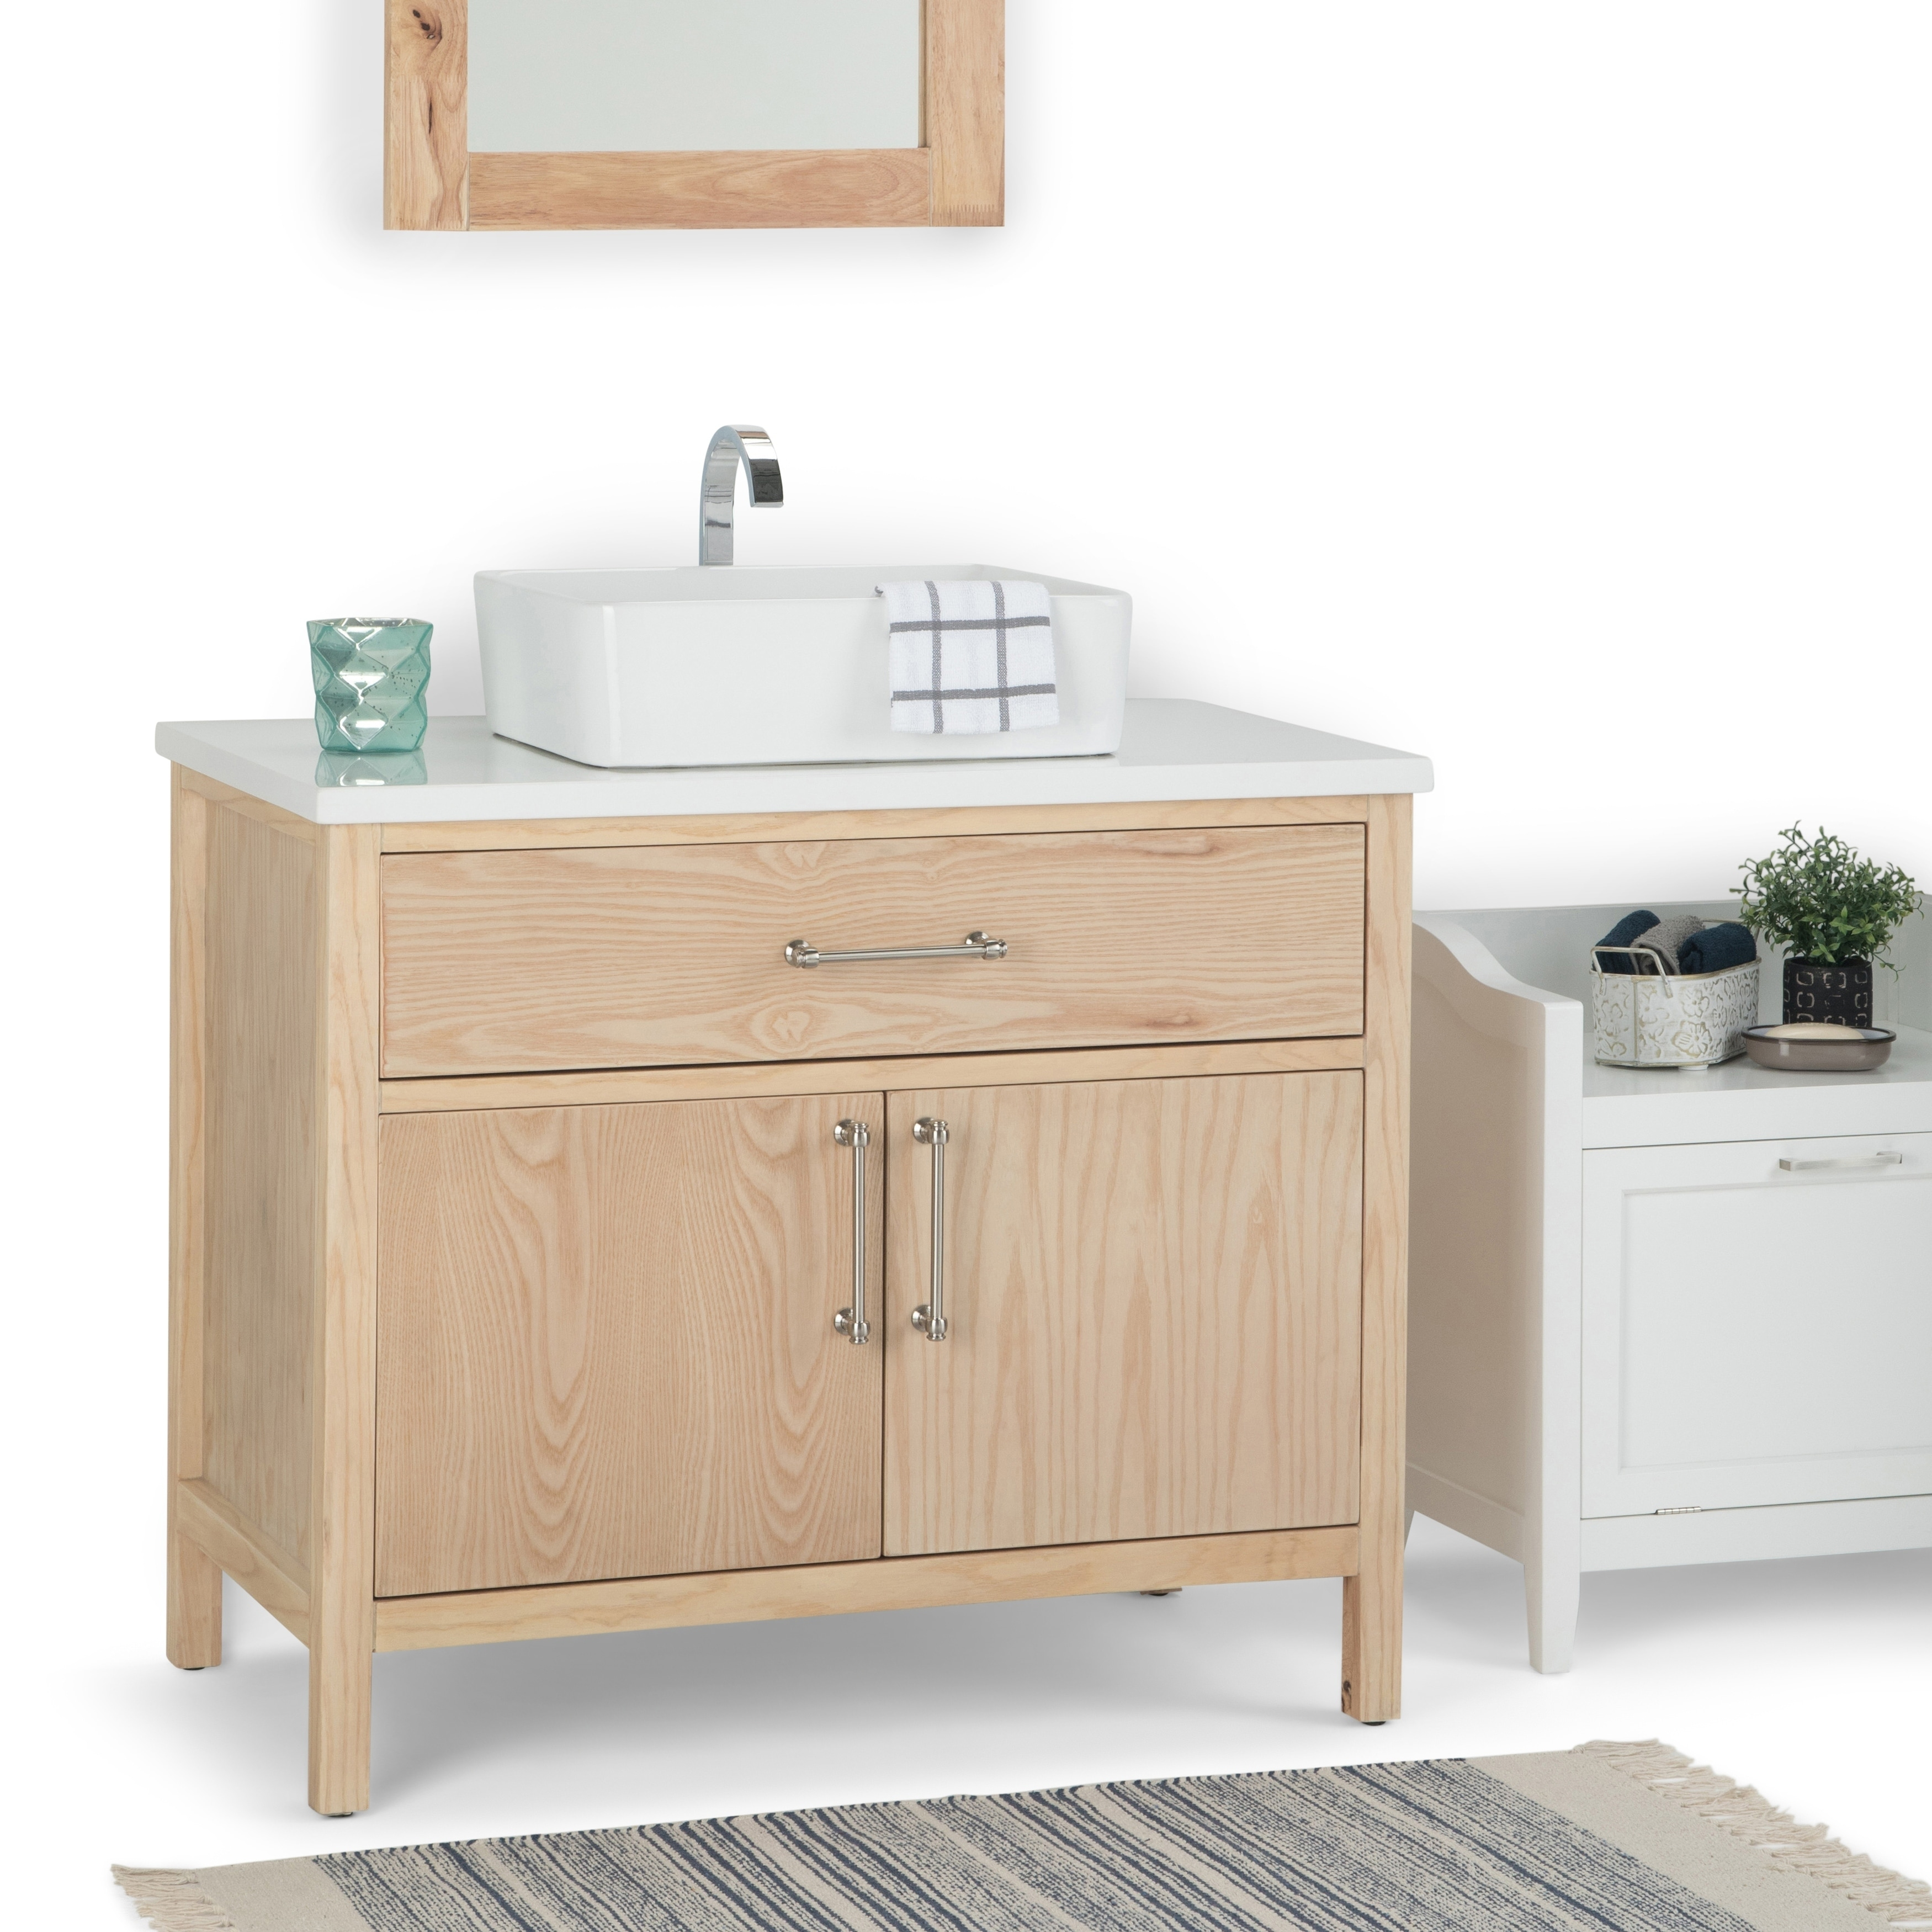 Shop Wyndenhall Farley 36 Inch Contemporary Bath Vanity In Natural With White Engineered Marble Extra Thick Top On Sale Overstock 22736252